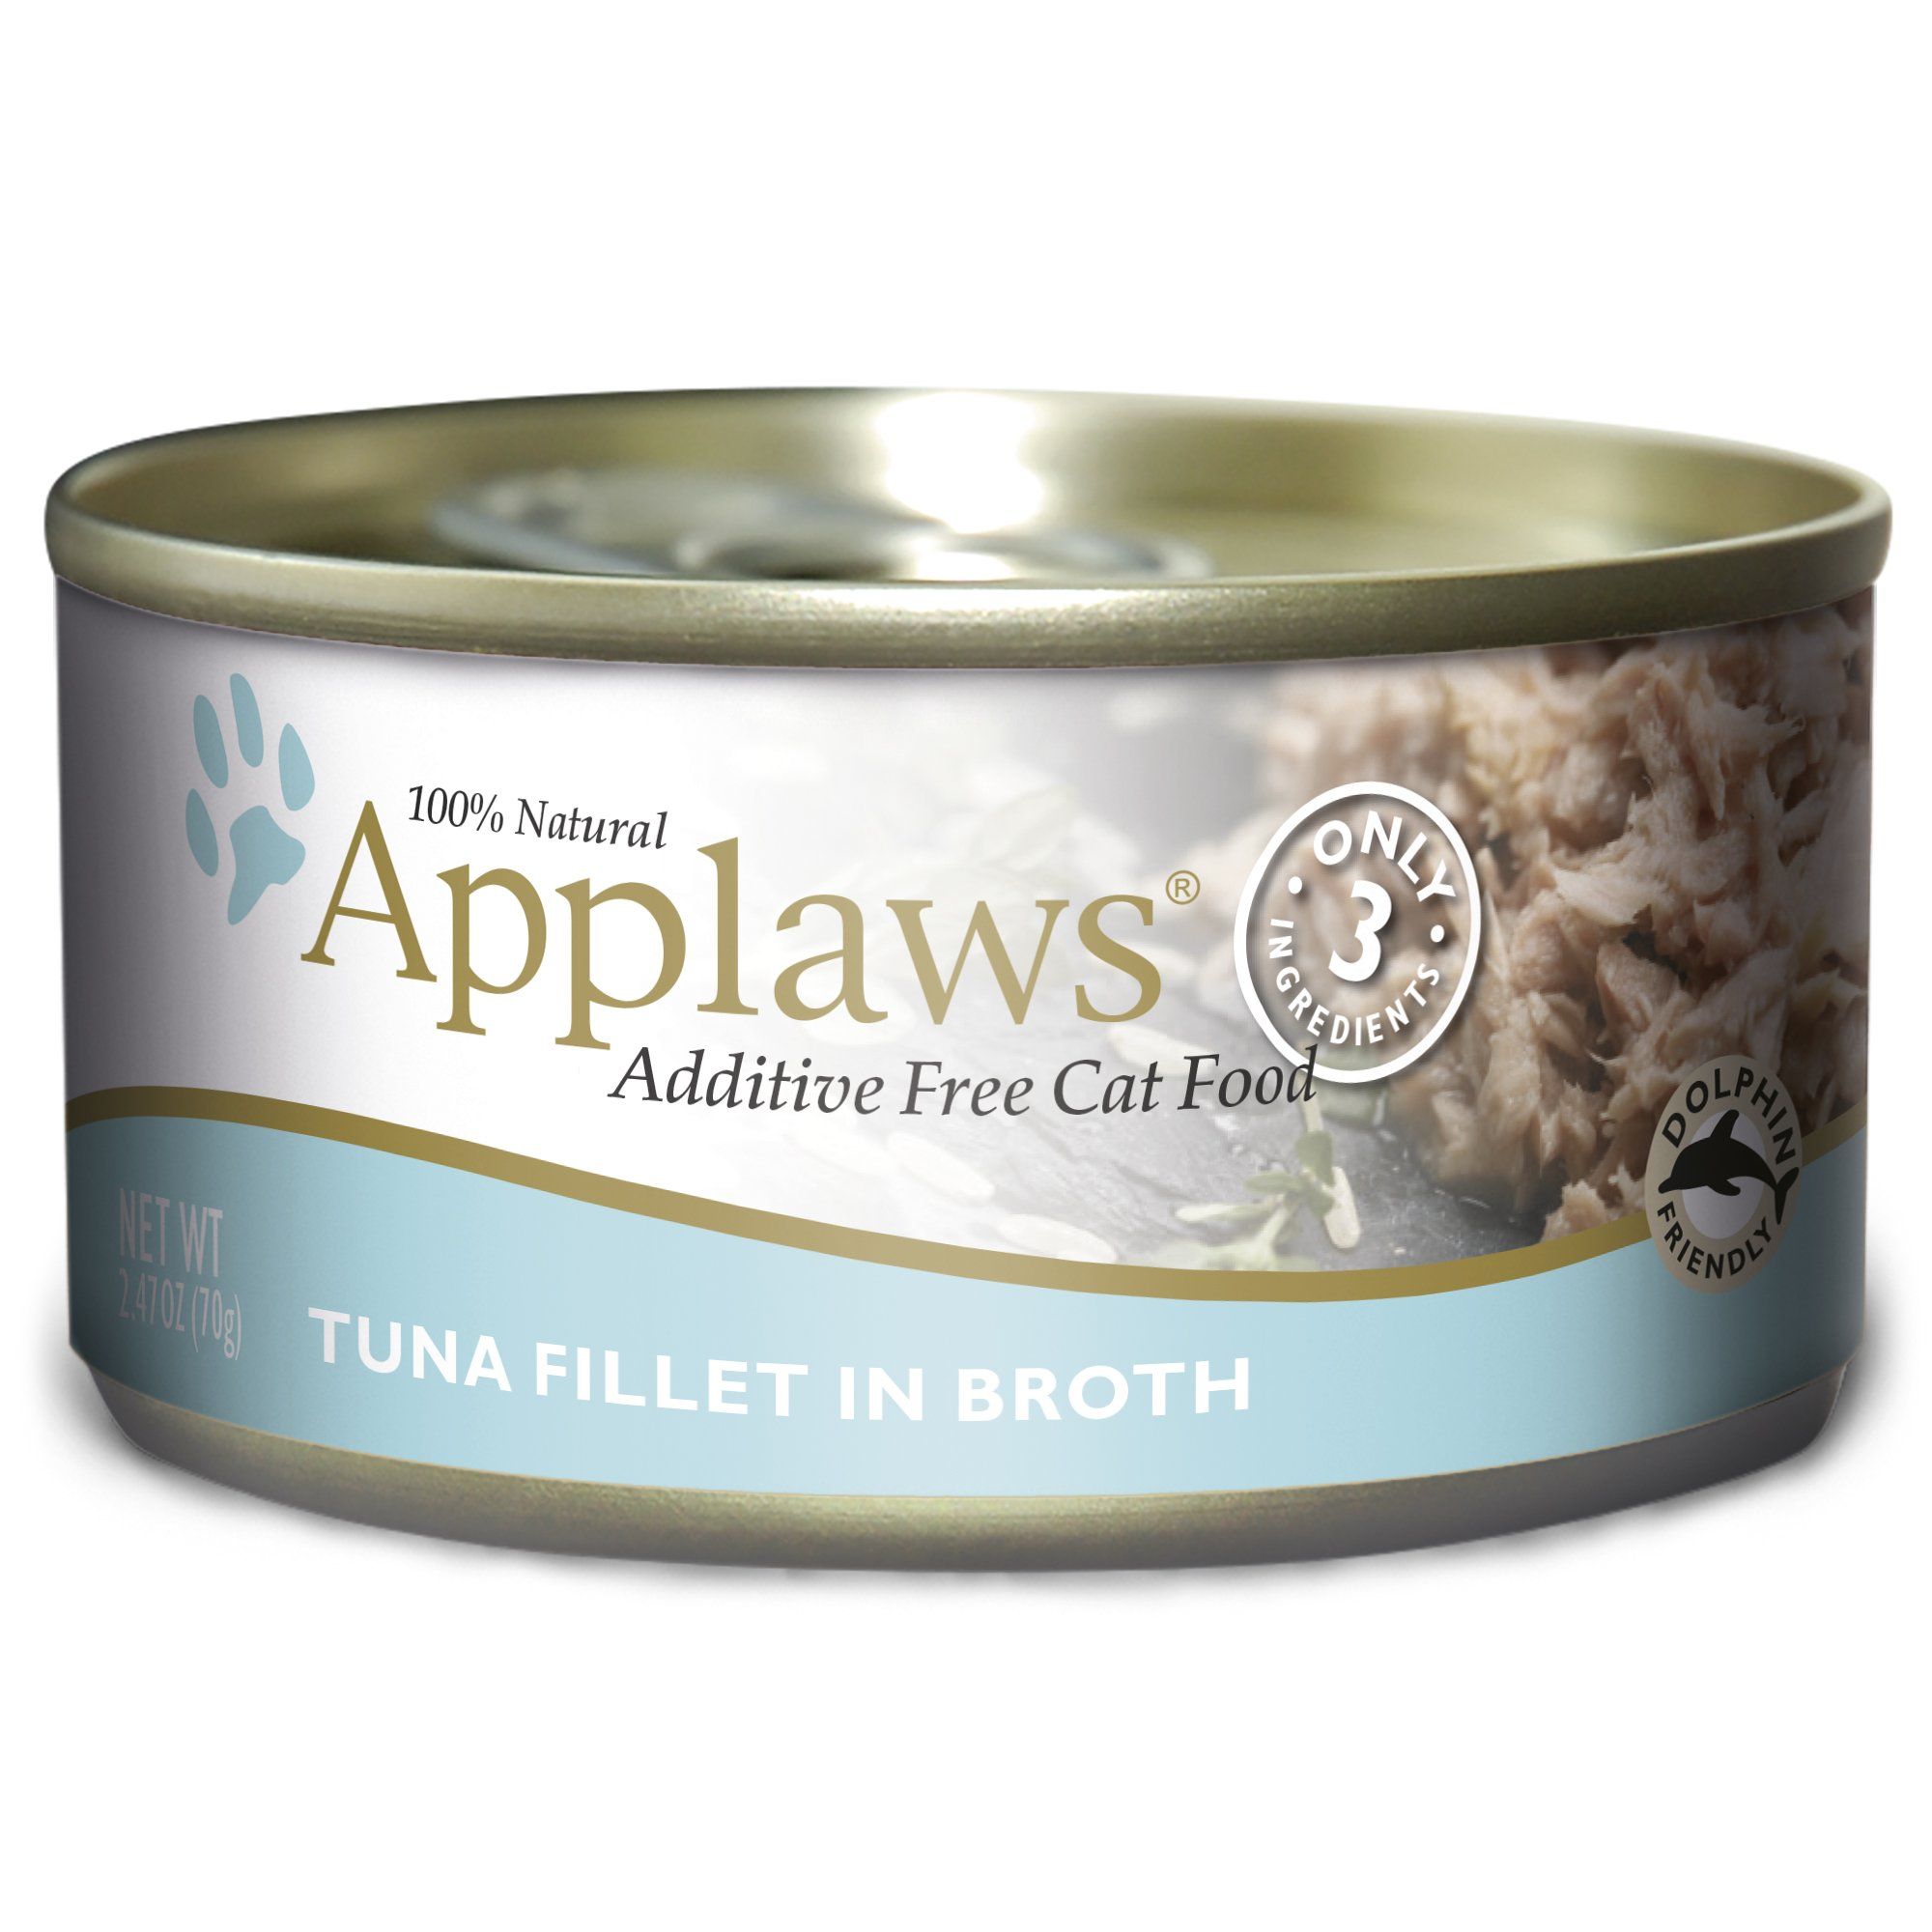 Applaws Cat Tin 2.4Oz Tuna Fillet - 24 Pack by Applaws